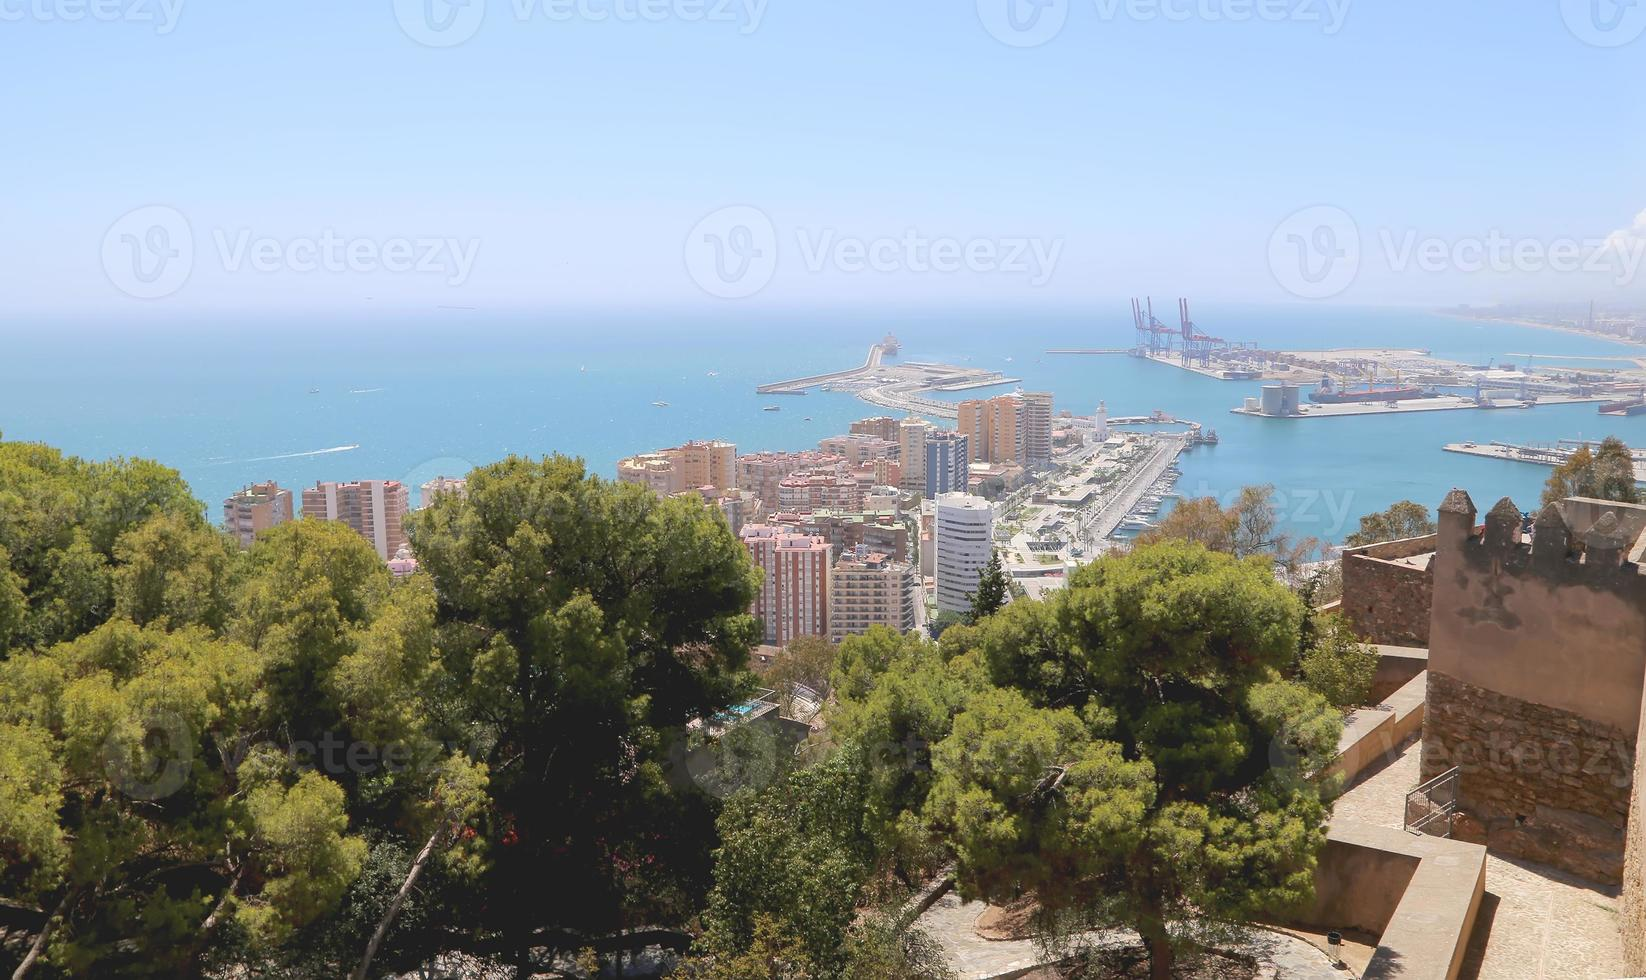 Malaga in Andalusia, Spain. Aerial view of the city photo